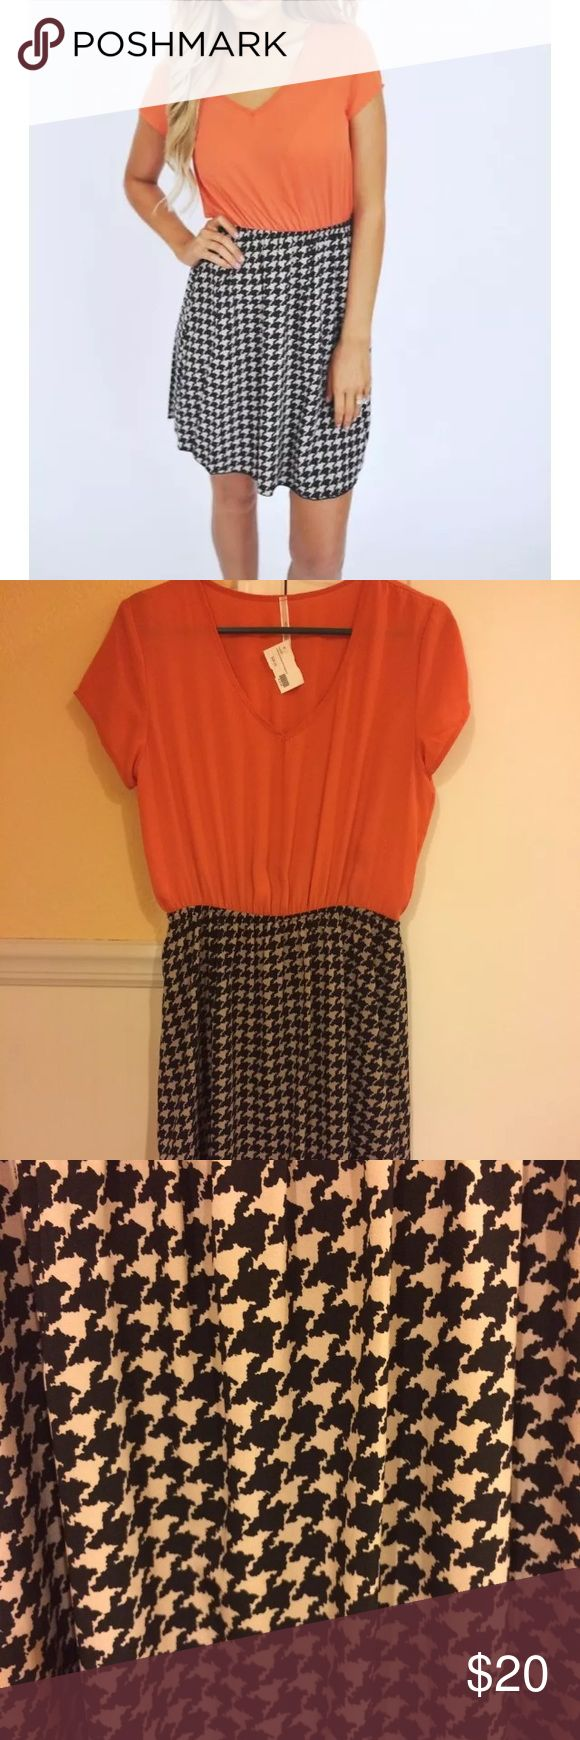 NWT Dottie Couture orange houndstooth dress L NWT orange/houndstooth dress, bought from Dottie Couture boutique. Size L. Lined underneath. Make offer! My Story Dresses